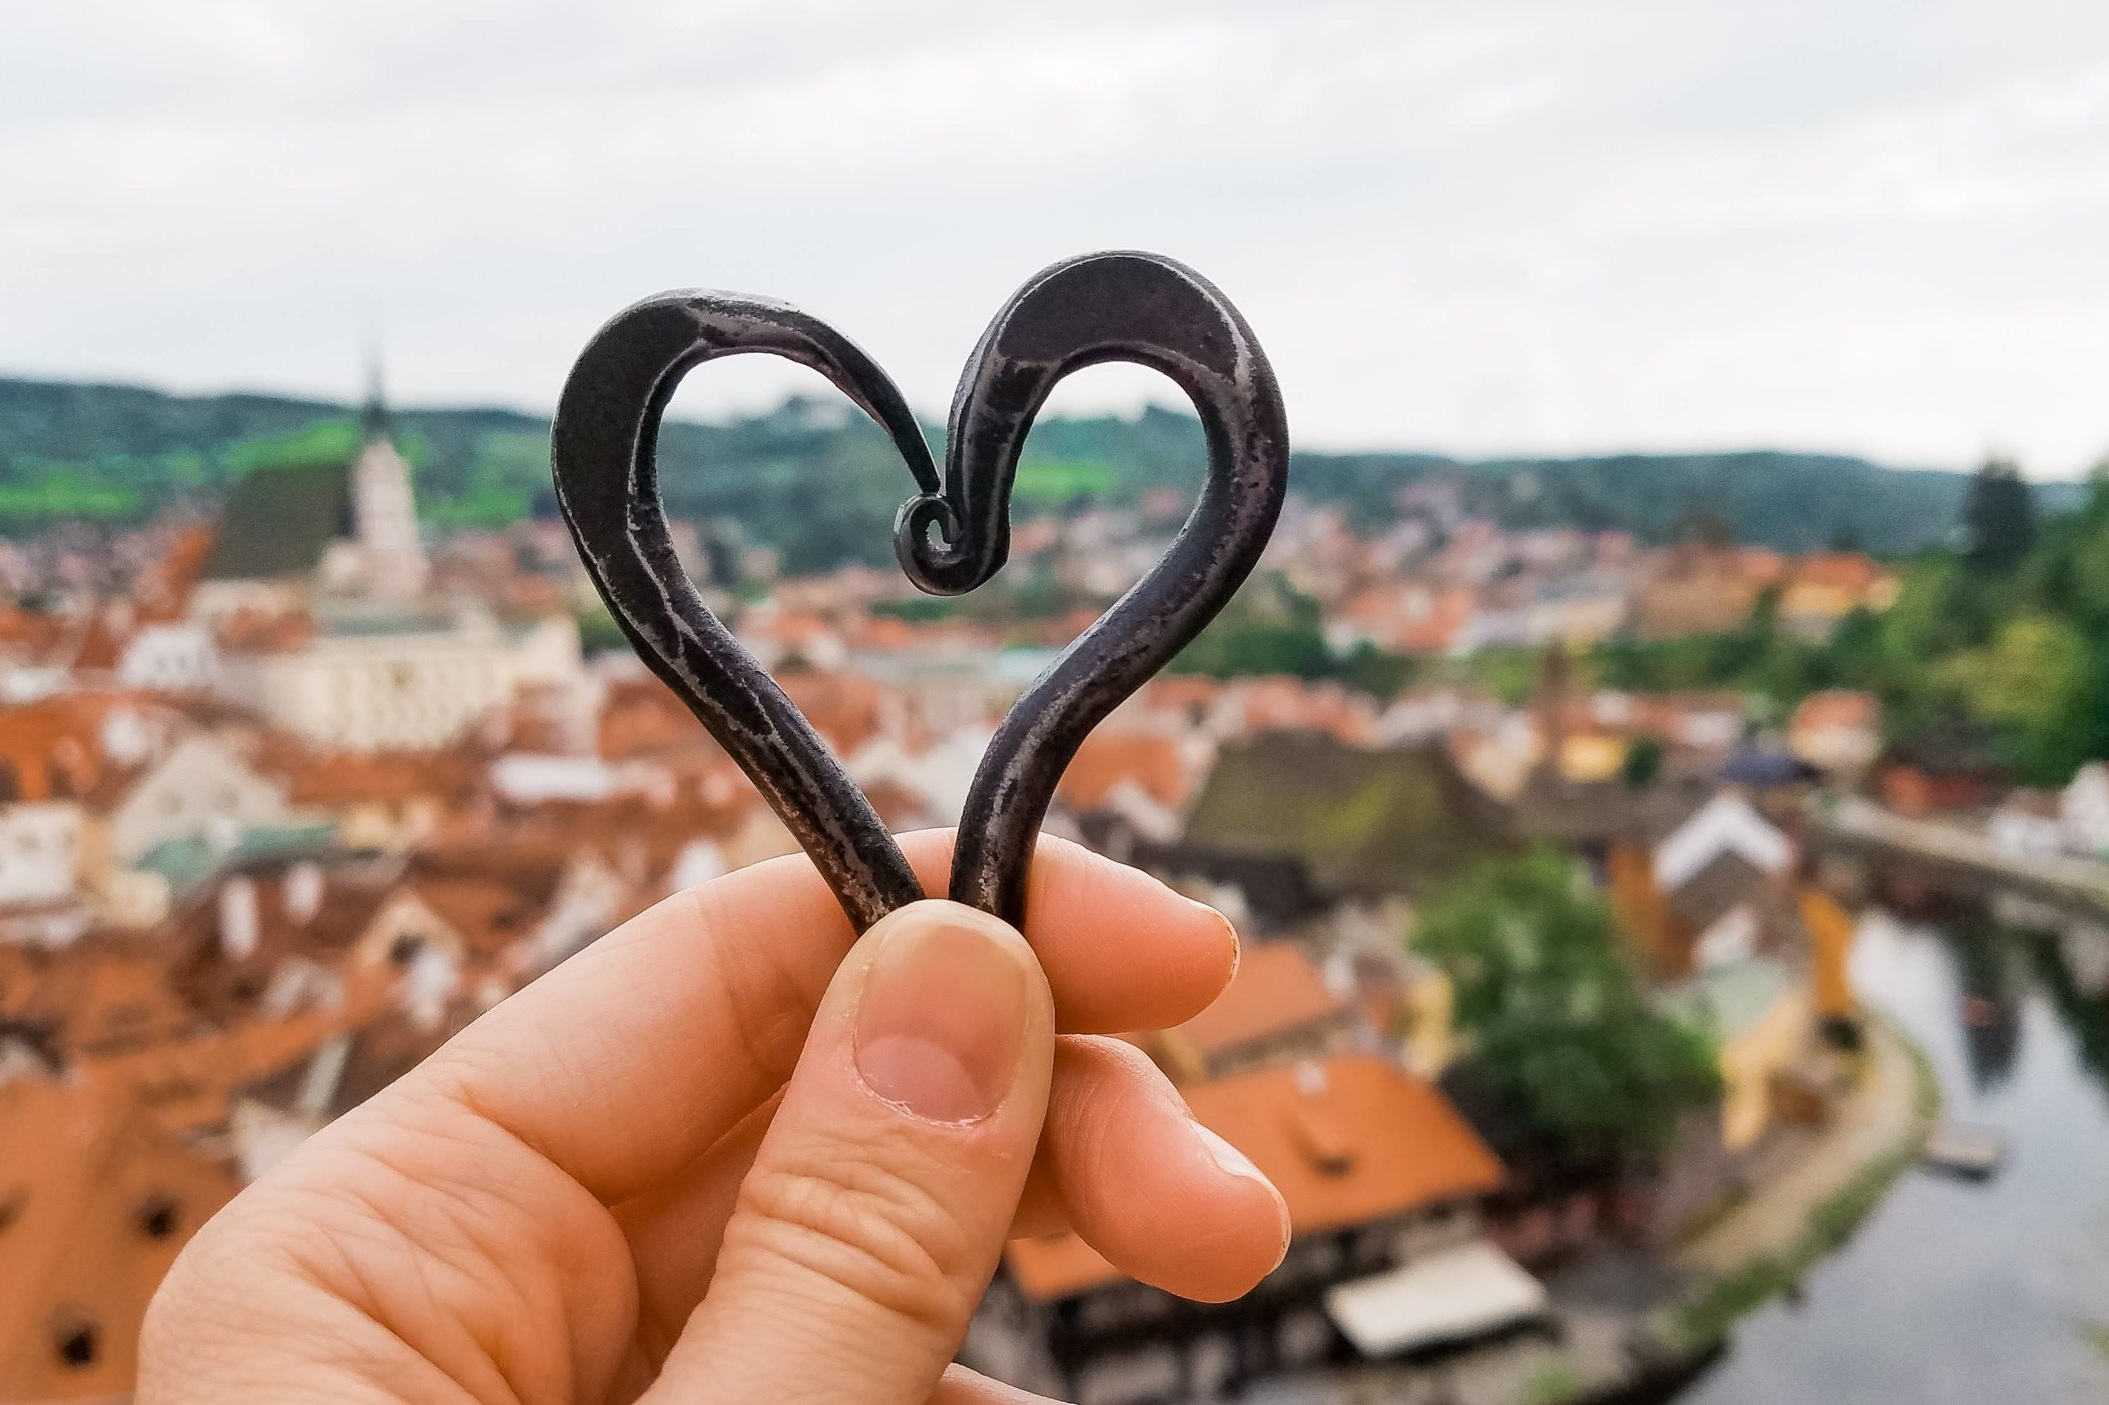 The view from the Cesky Krumlov tower looking over downtown and St. Vitus Church framed by an iron heart made by the local blacksmith.